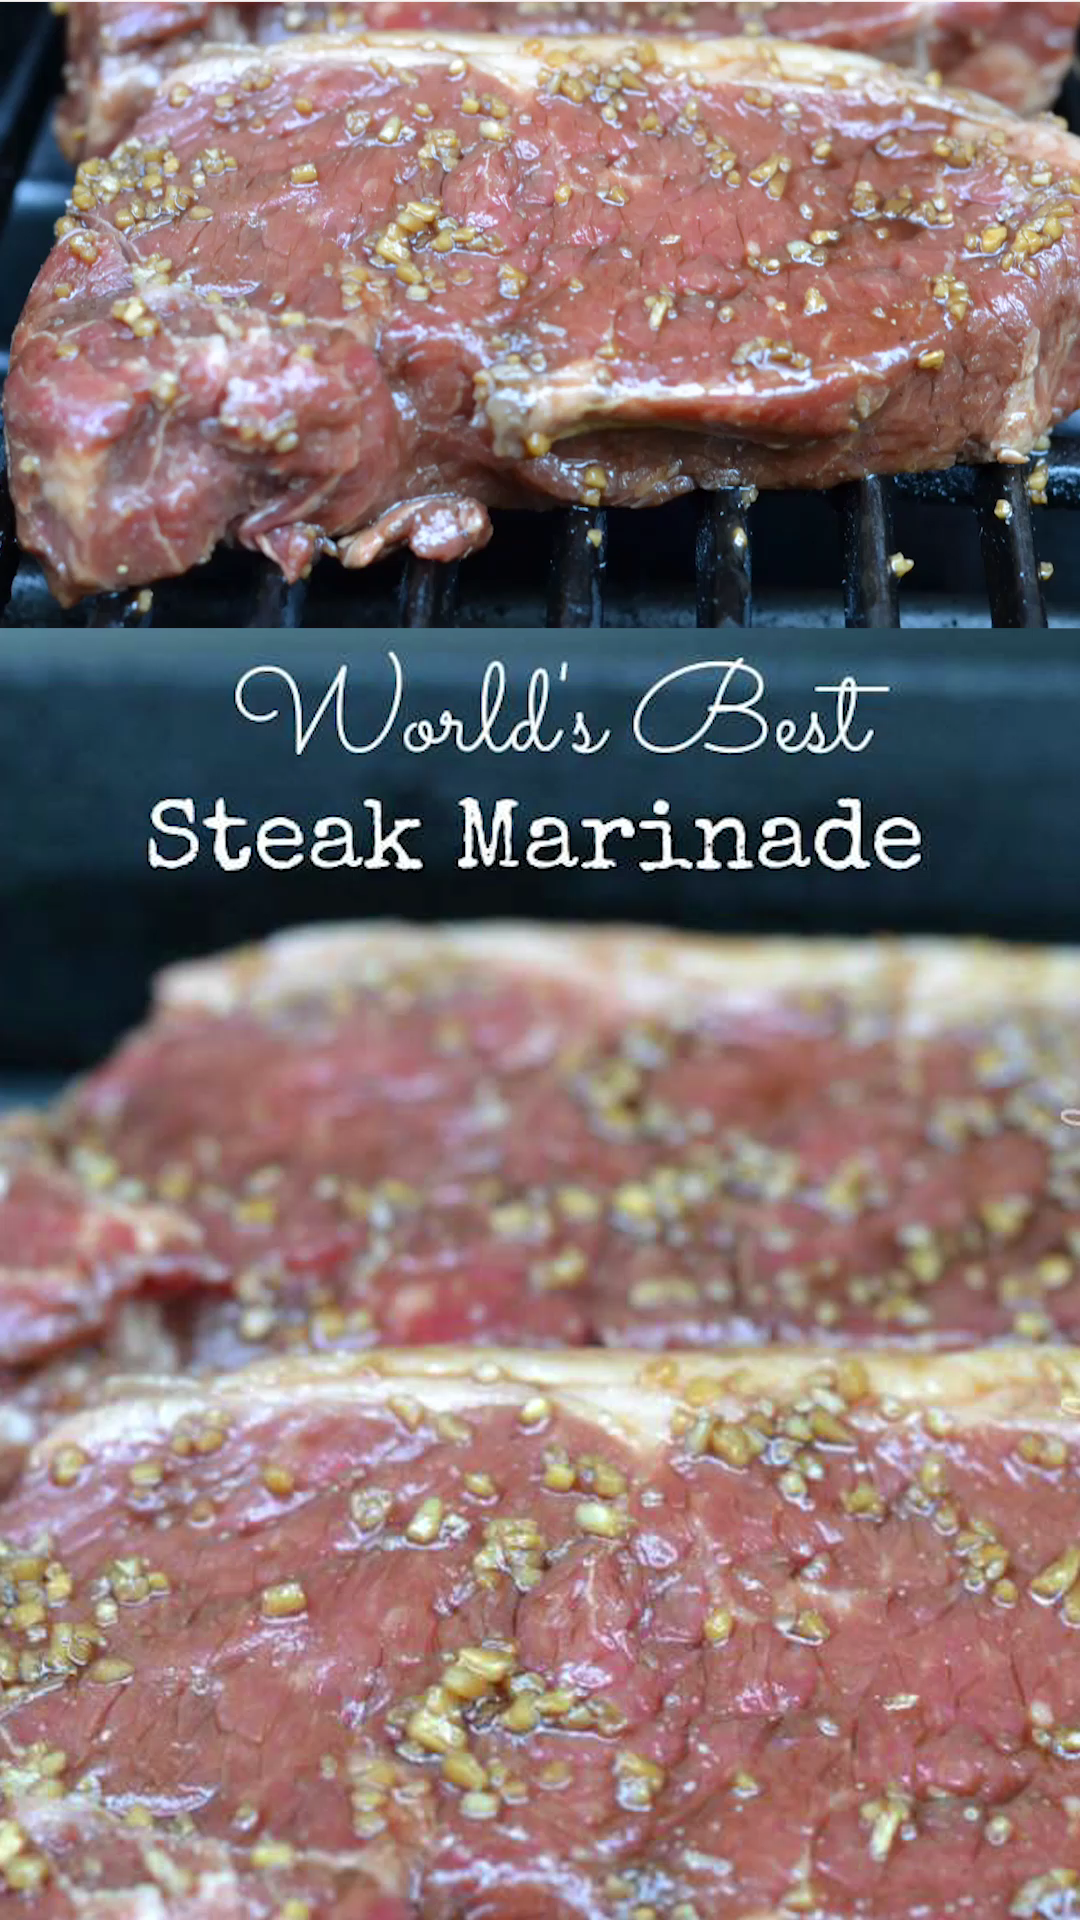 World's Best Steak Marinade